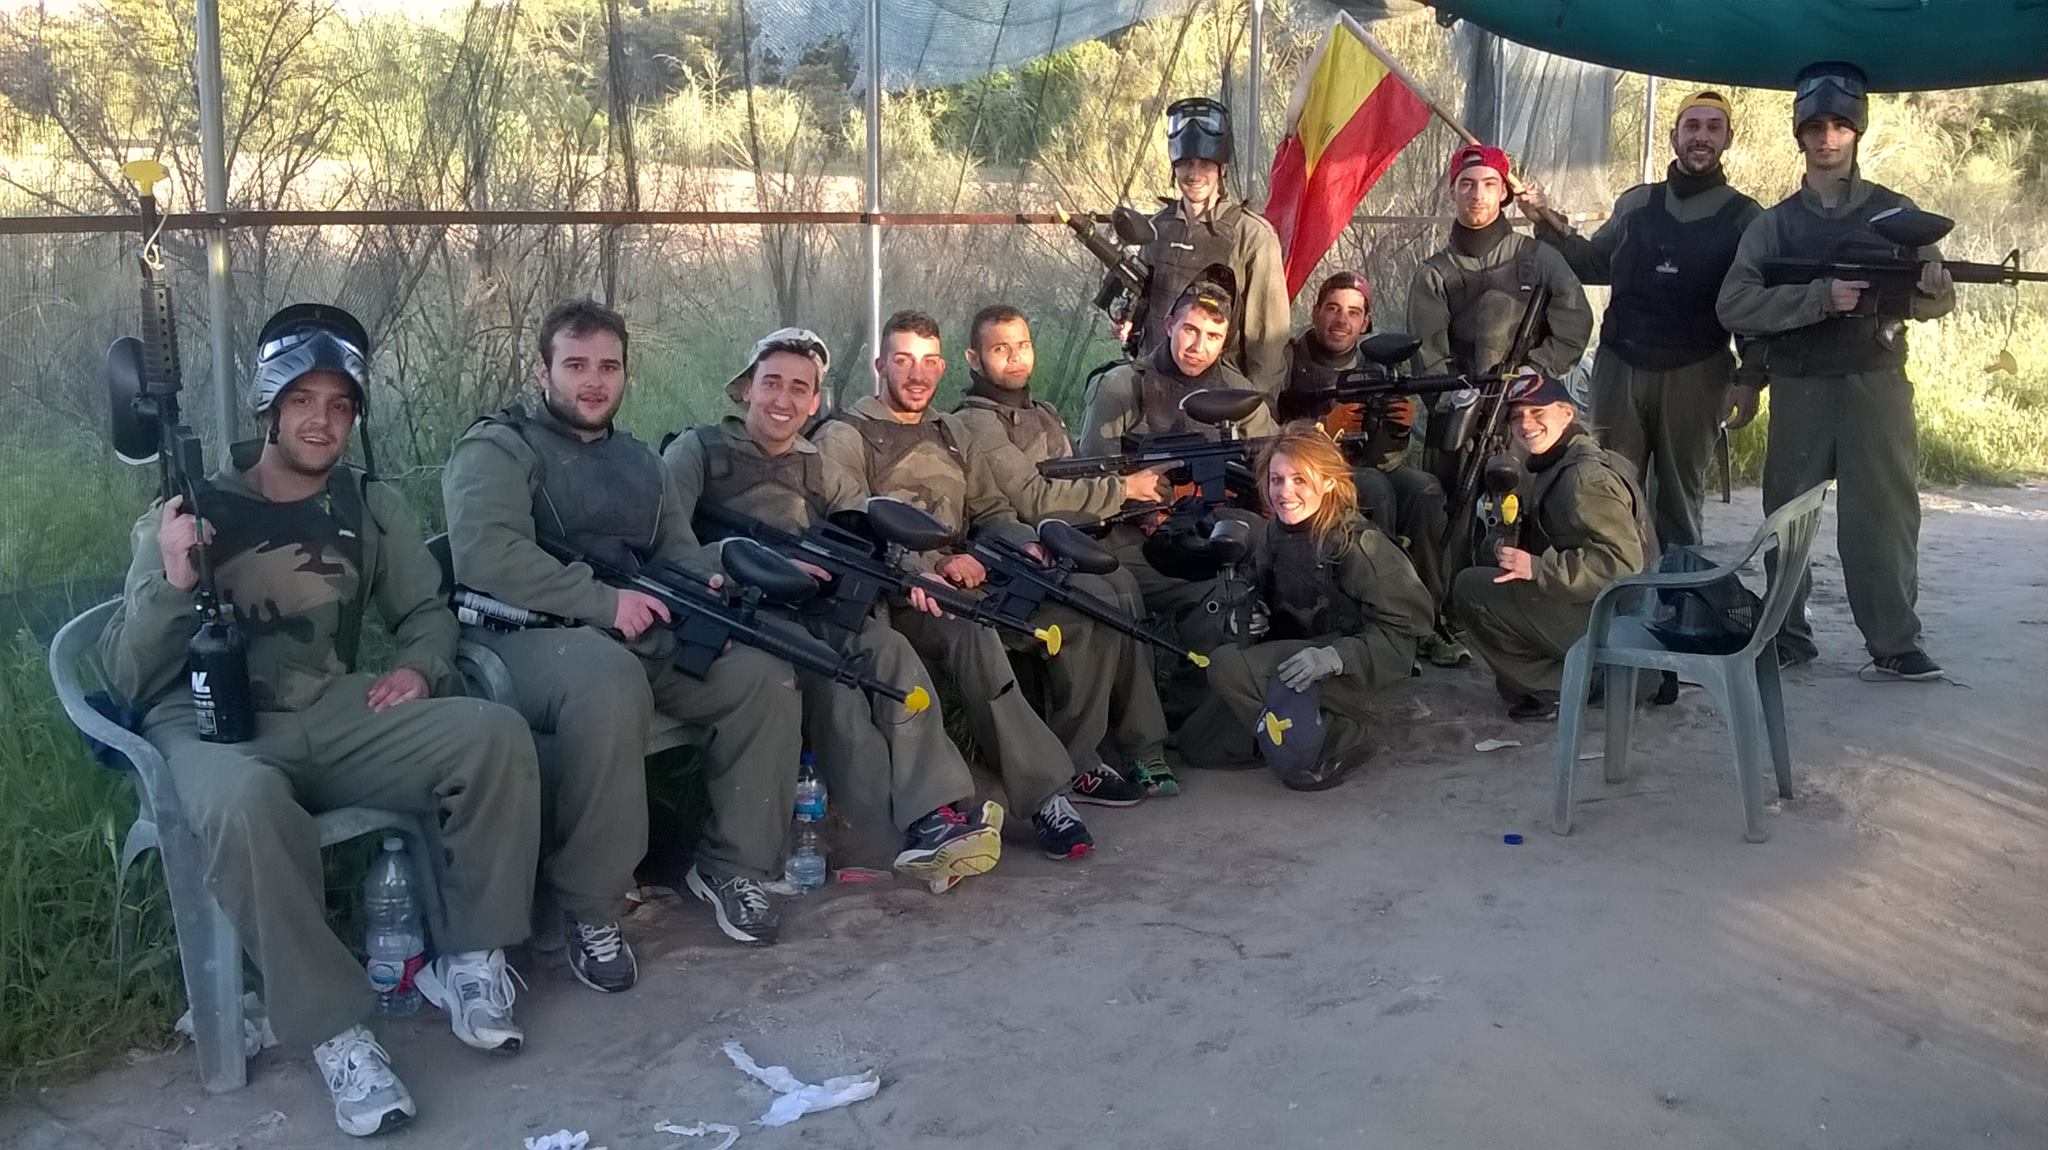 Click to enlarge image grupo-paintball-madrid.jpg